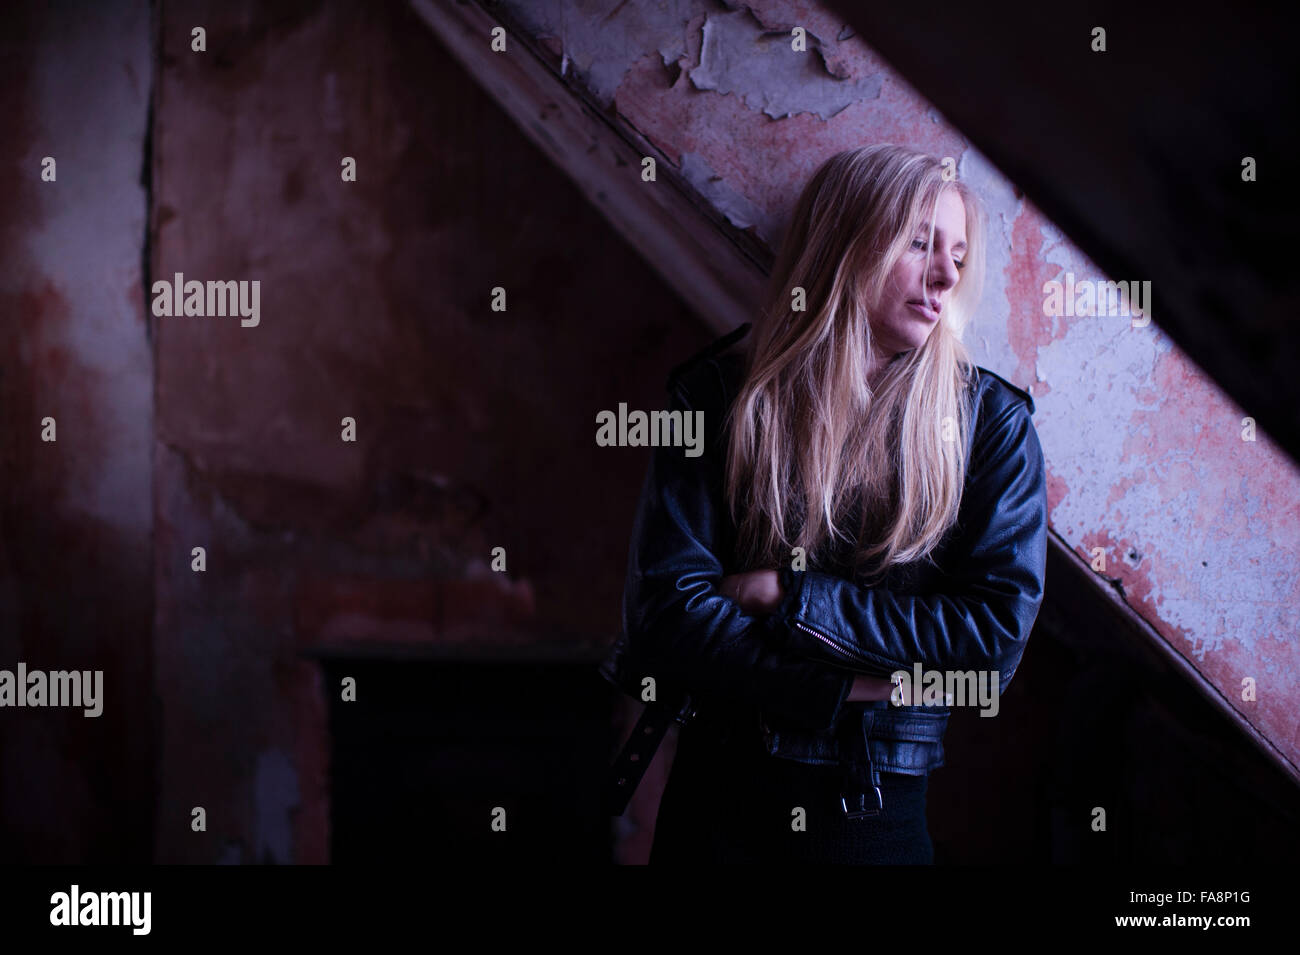 A sad lonely depressed young slim blonde haired woman alone in a rundown derelict room building UK - Stock Image